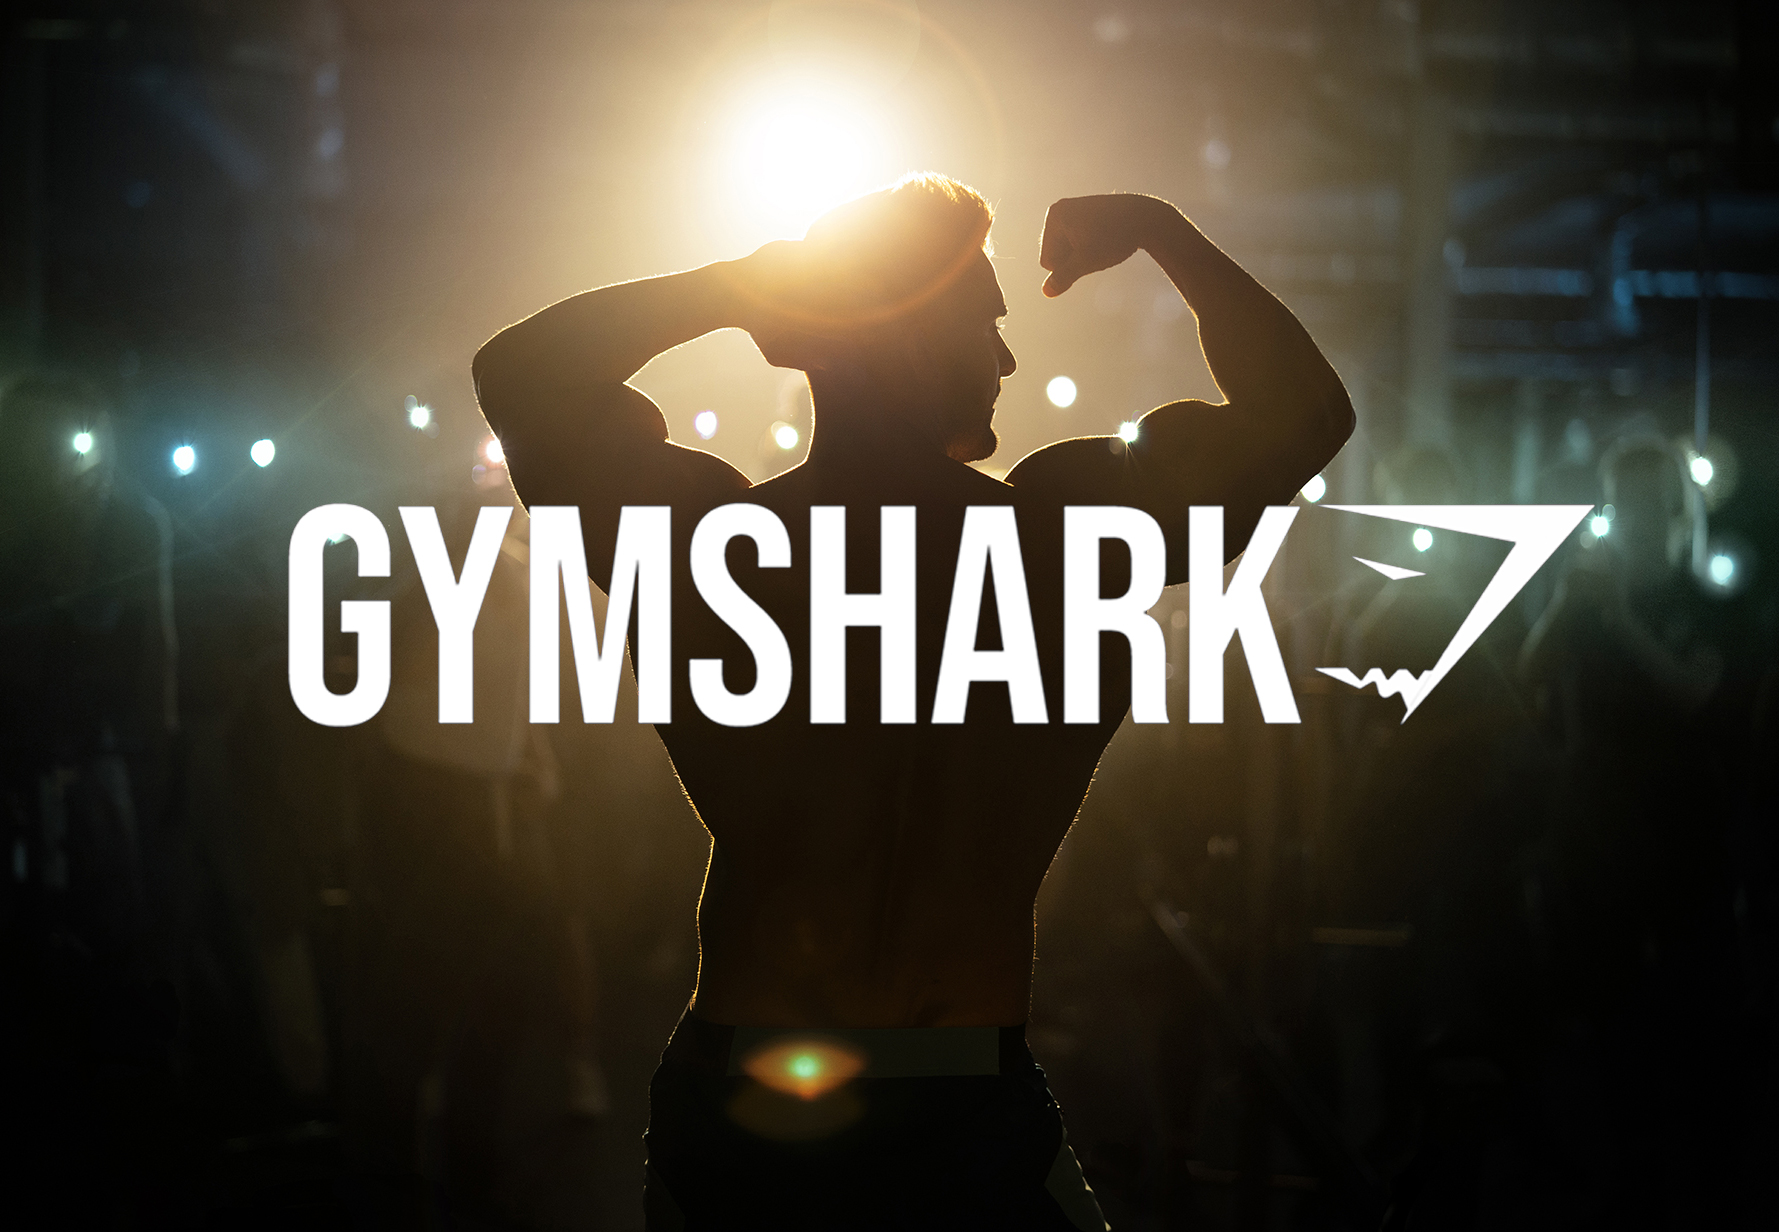 Gymshark advertising photographer image - model posing with logo